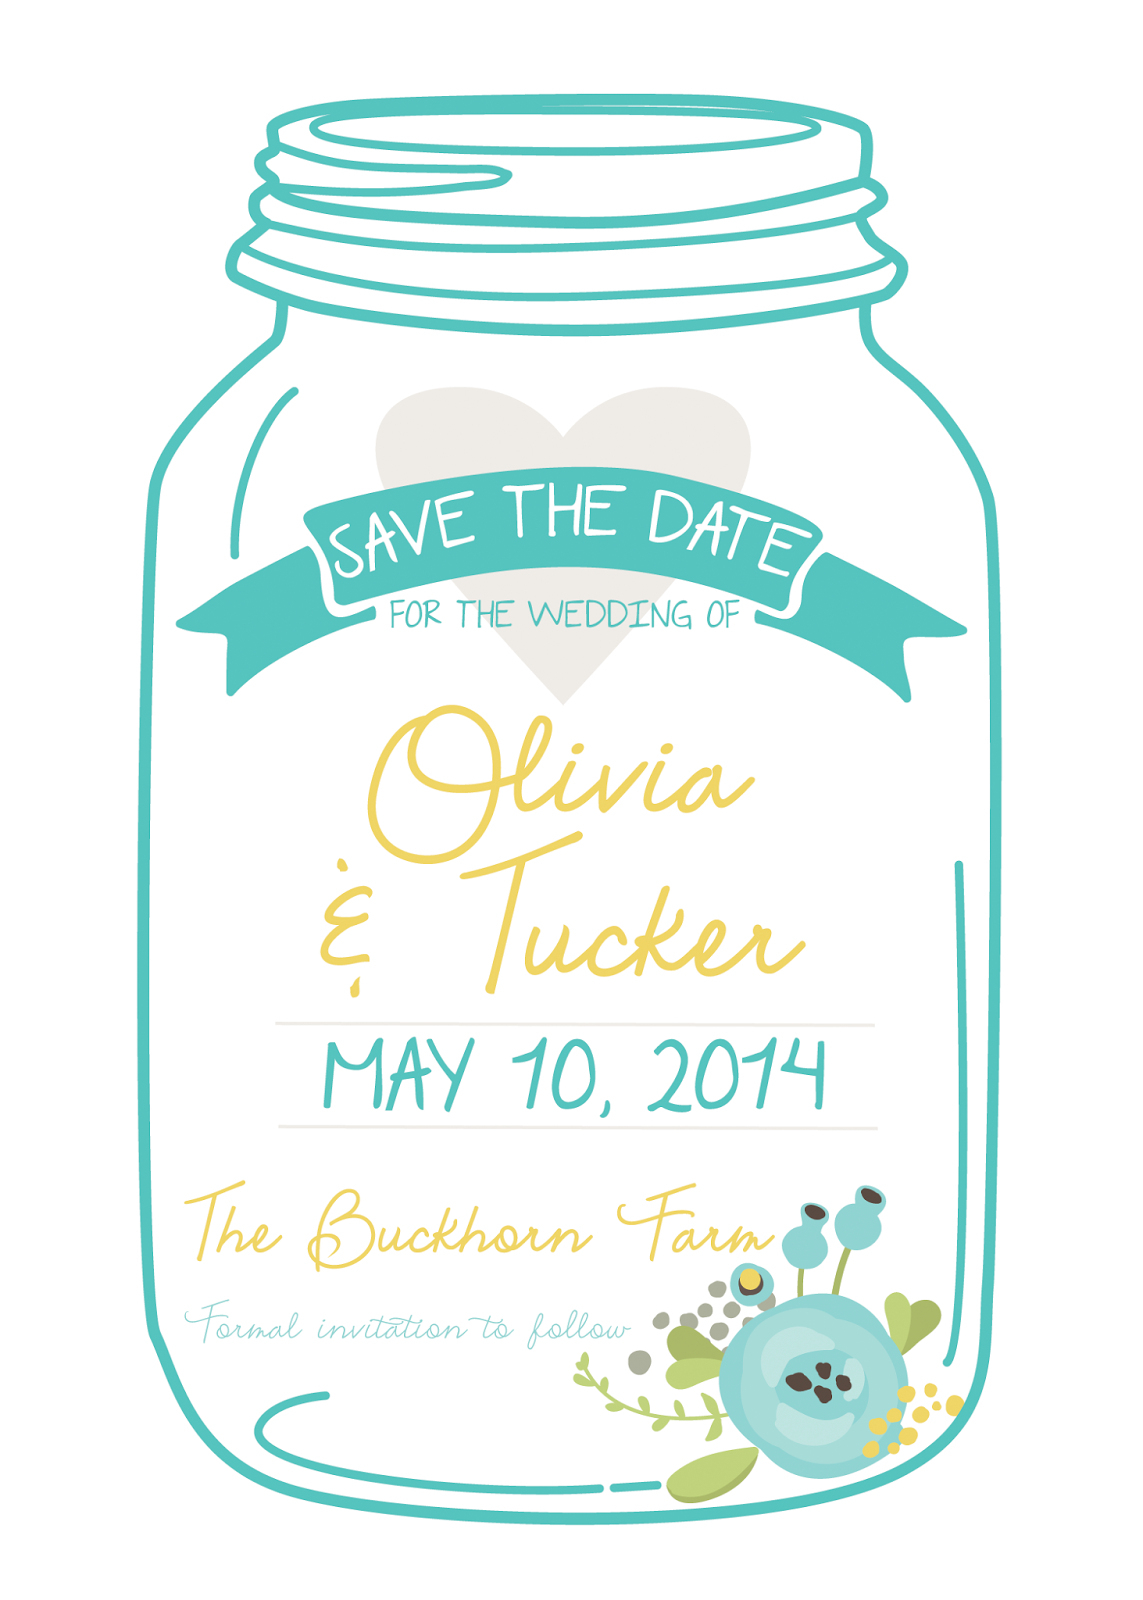 Best Images Of Free Printable Mason Jar Invitation Template - Free Mason Jar Wedding Invitation Printable Templates